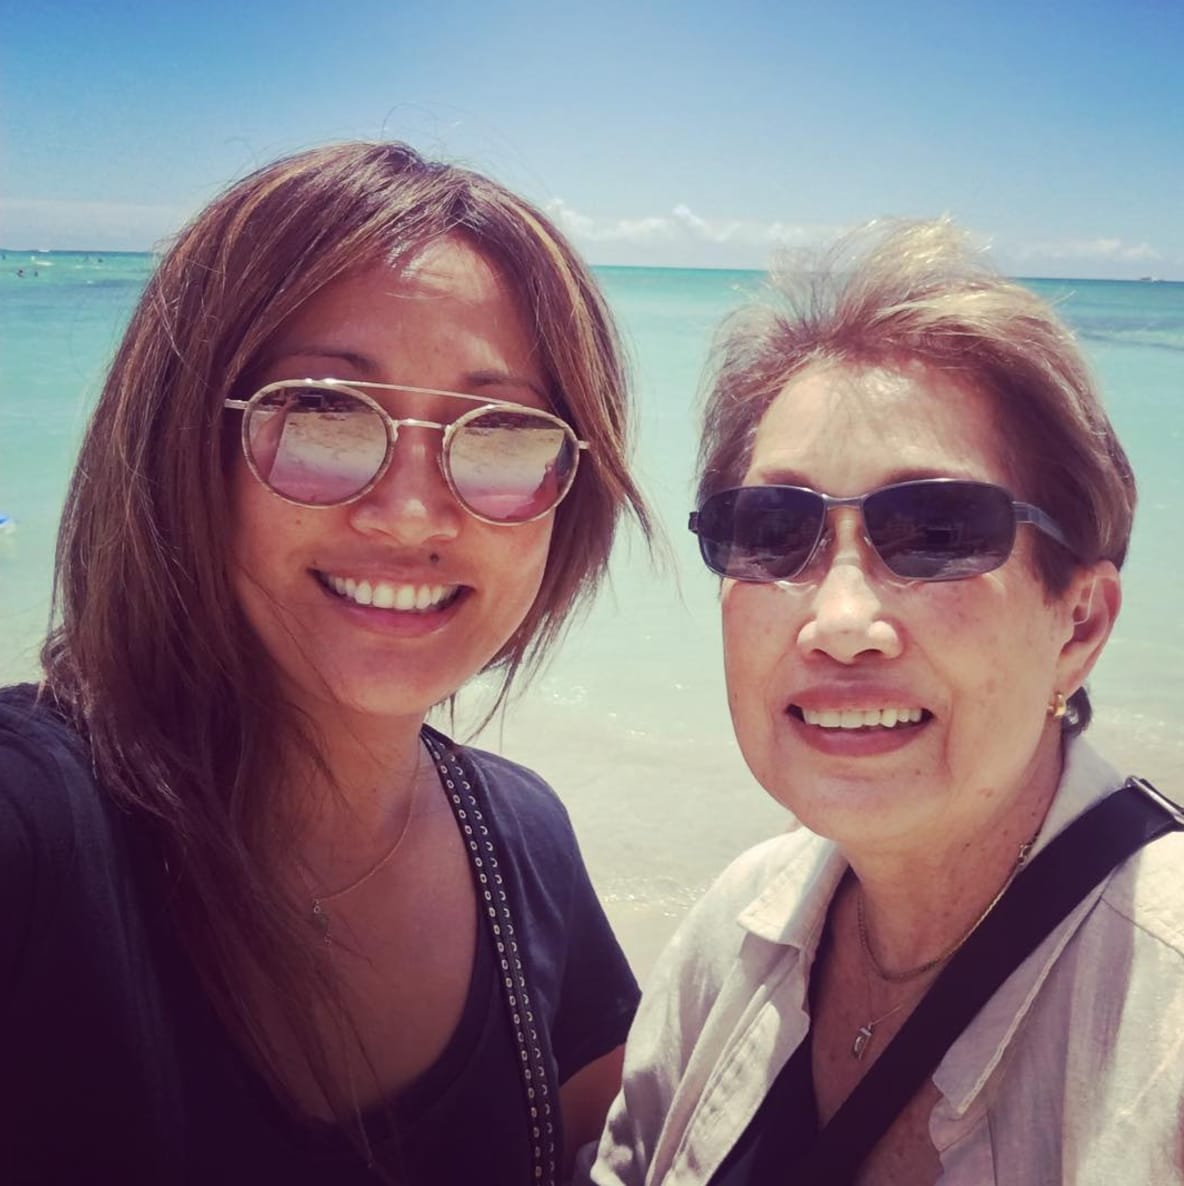 Carrie Ann Inaba Wedding.Carrie Ann Inaba And Robb Derringer It S Over The Hollywood Gossip